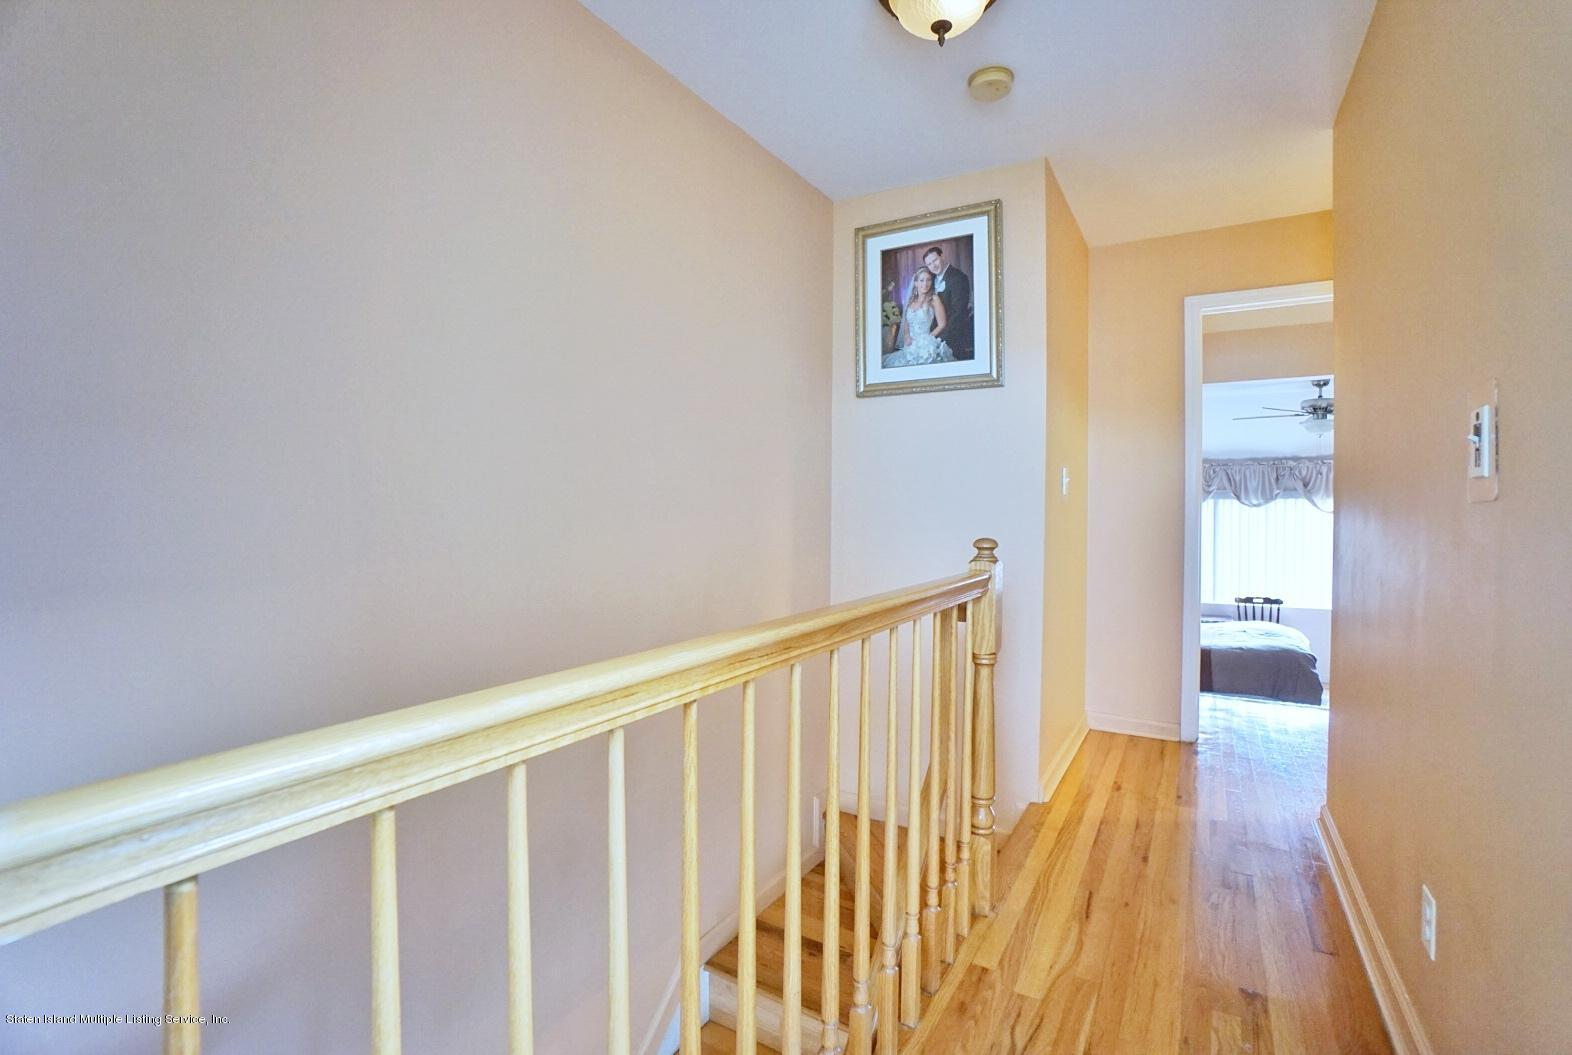 Single Family - Attached 30 Cranberry Court  Staten Island, NY 10309, MLS-1135421-18